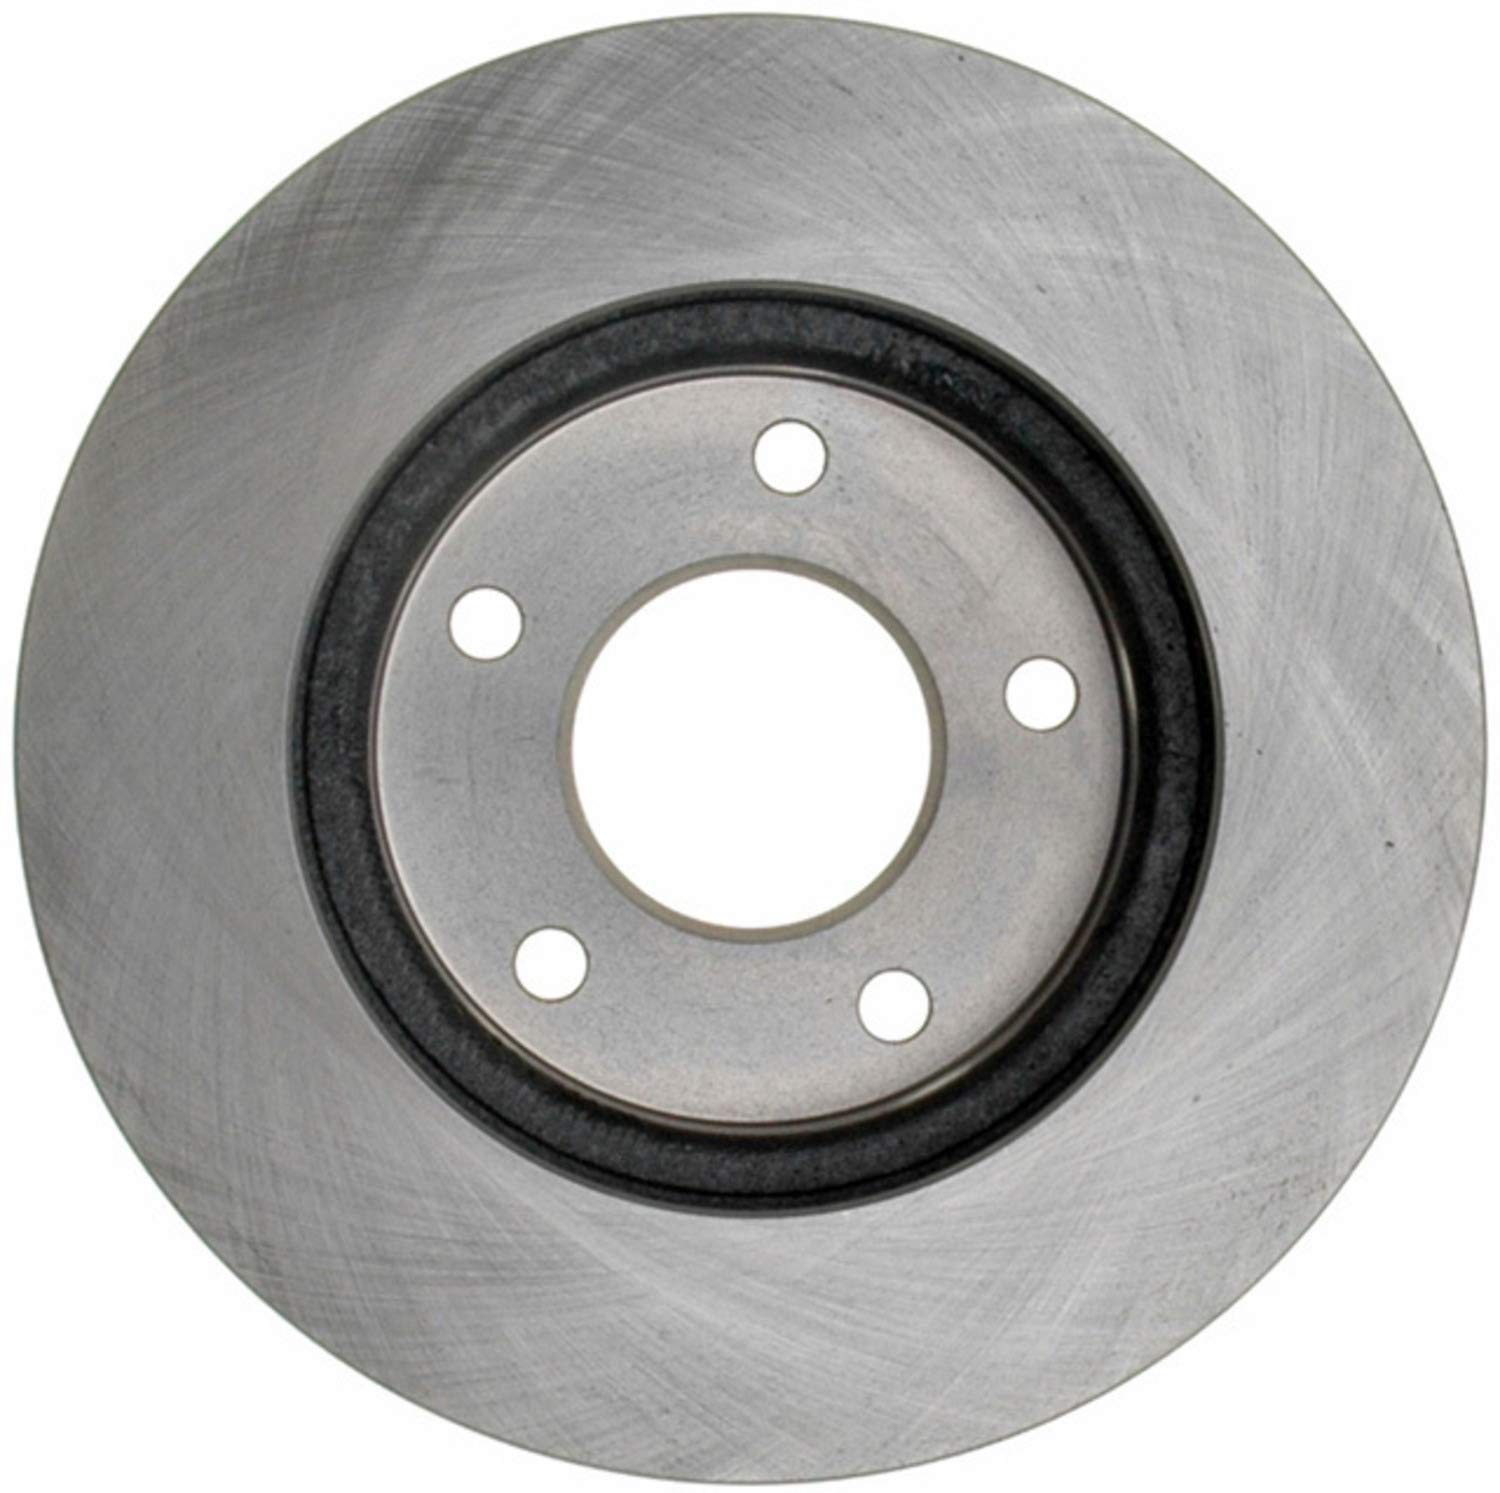 Magneti Marelli by Mopar 2AMV5513AA Front Disc Brake Rotor